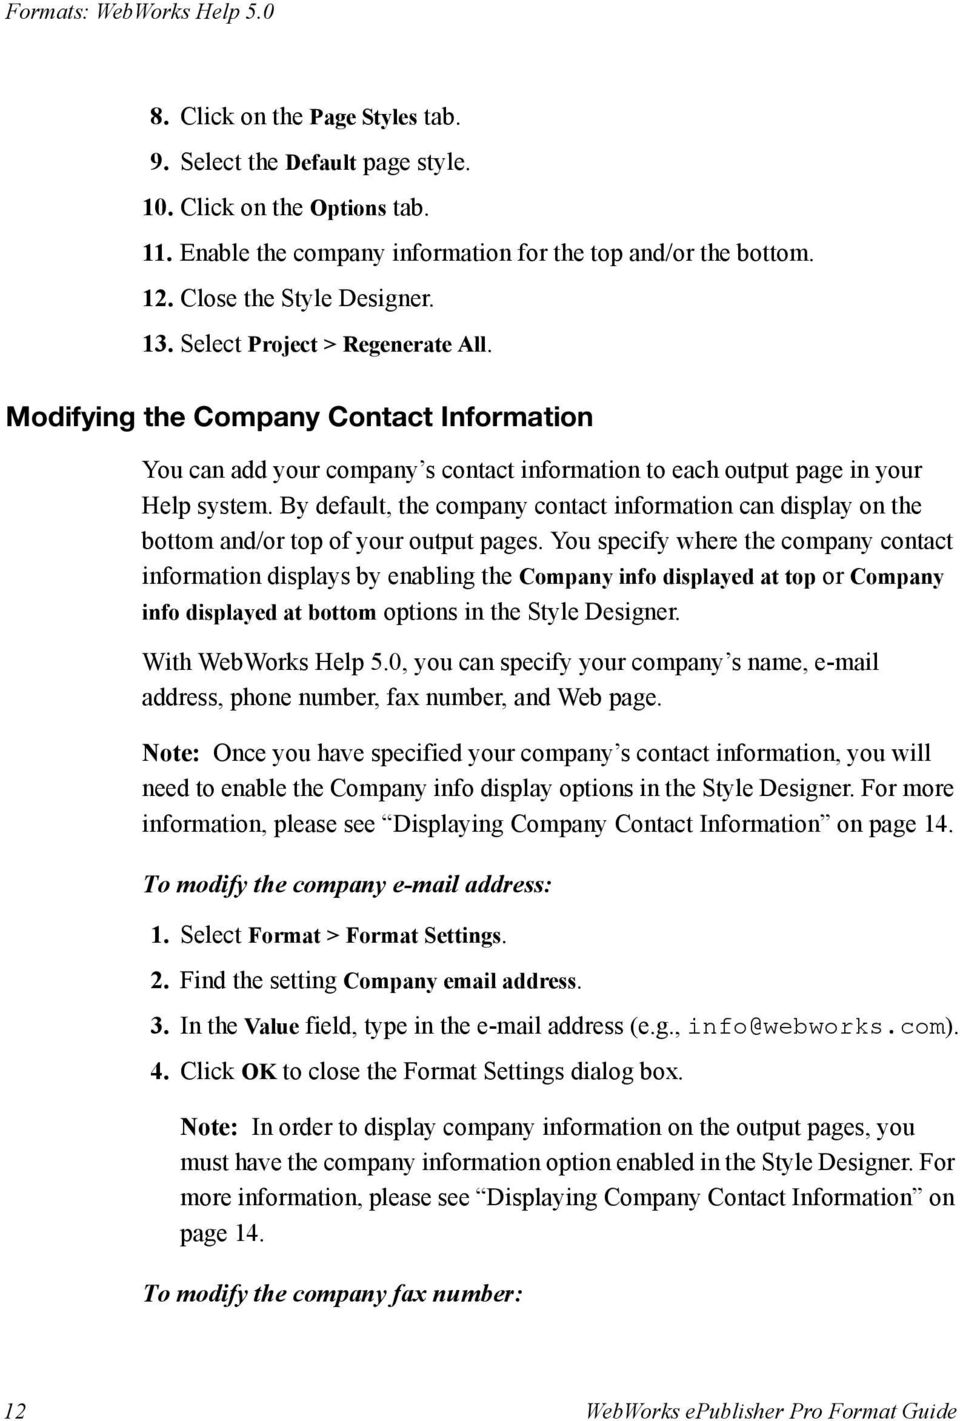 By default, the company contact information can display on the bottom and/or top of your output pages.